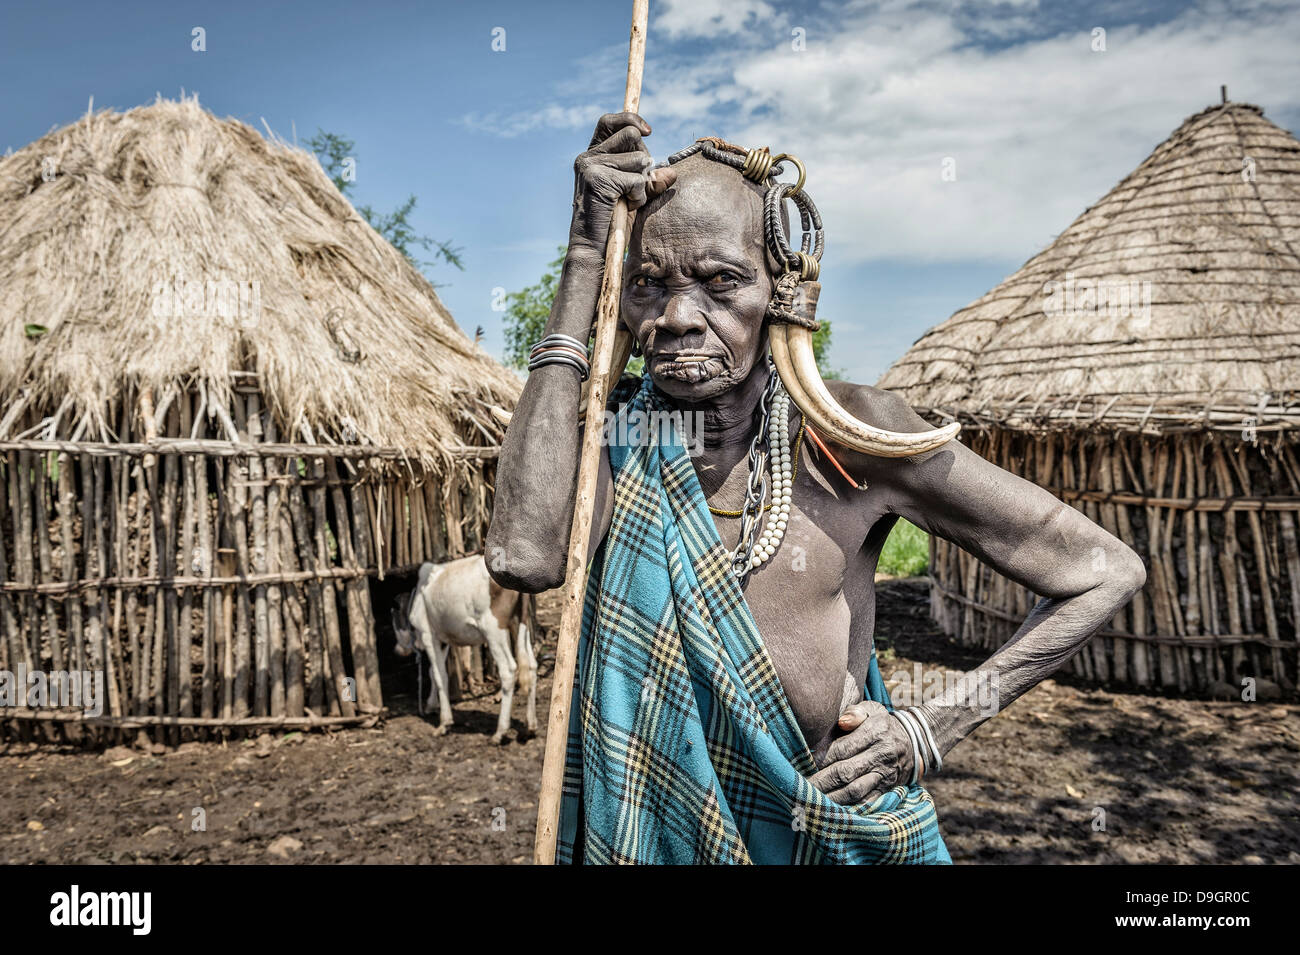 Portrait of an old Mursi woman with typical ornaments, Omo valley, Ethiopia - Stock Image